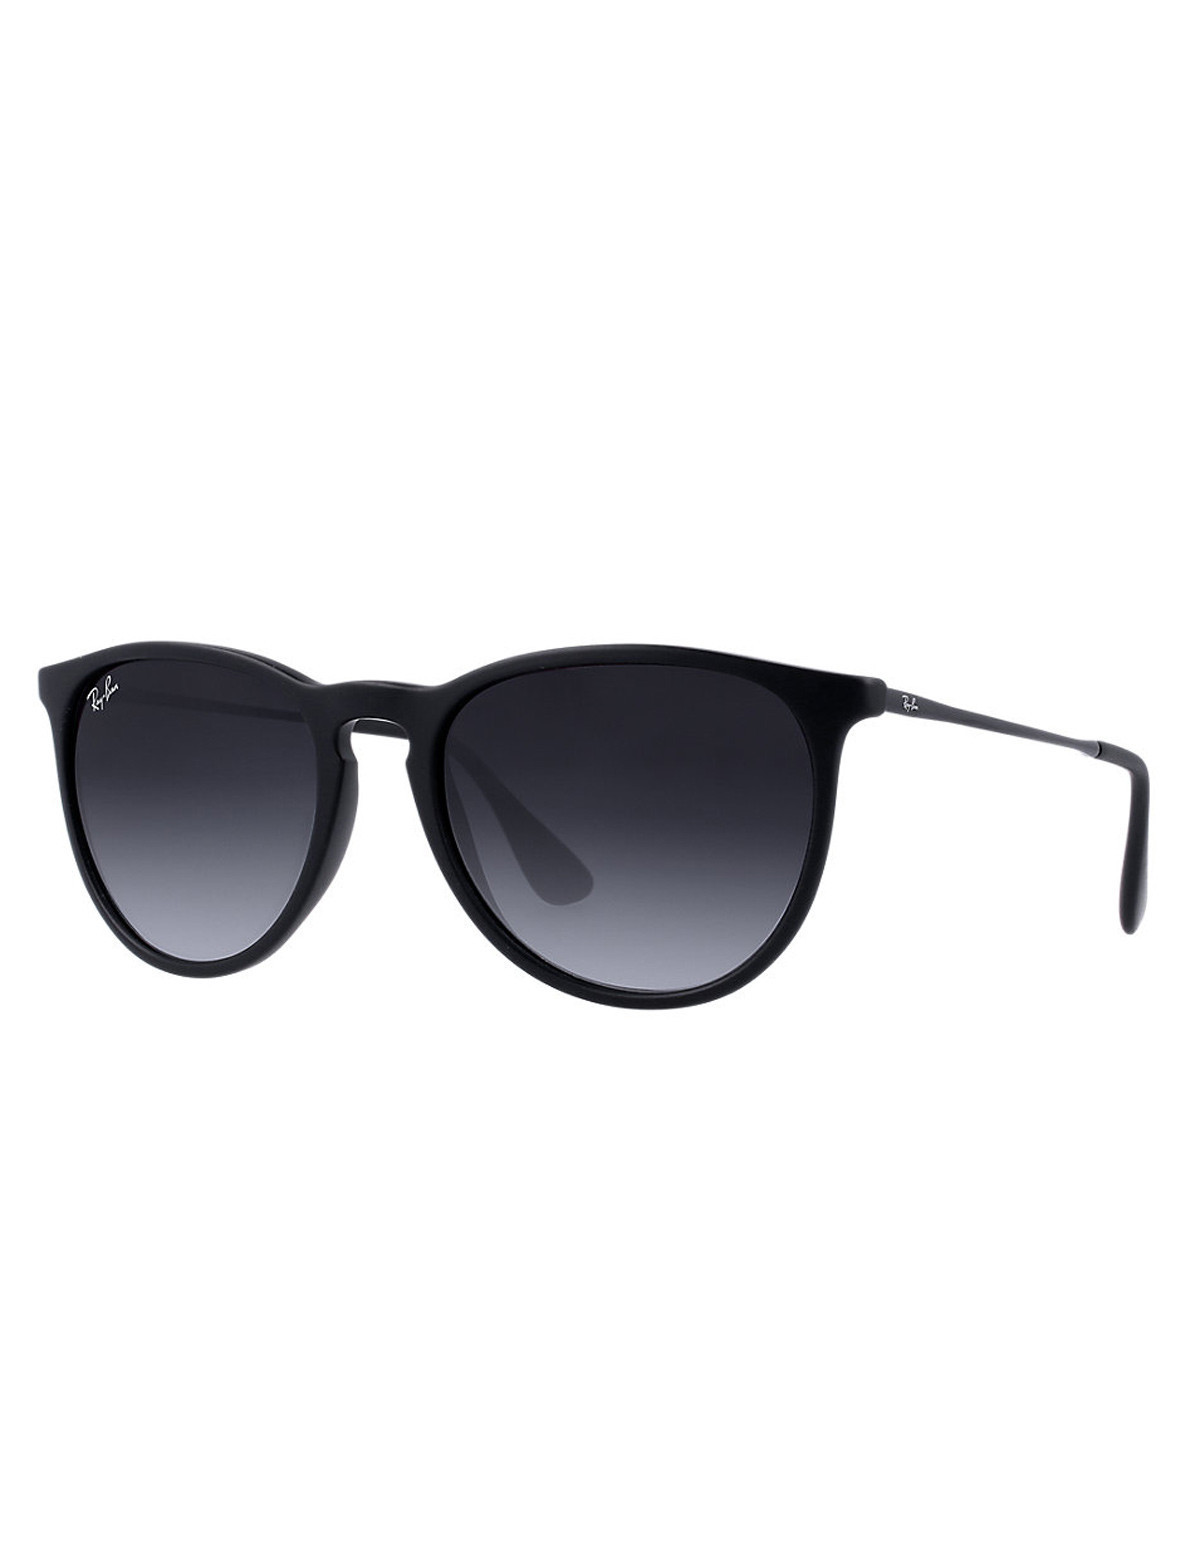 232040c8e07  10 Sunglasses Ray Ban On Sale « Heritage Malta